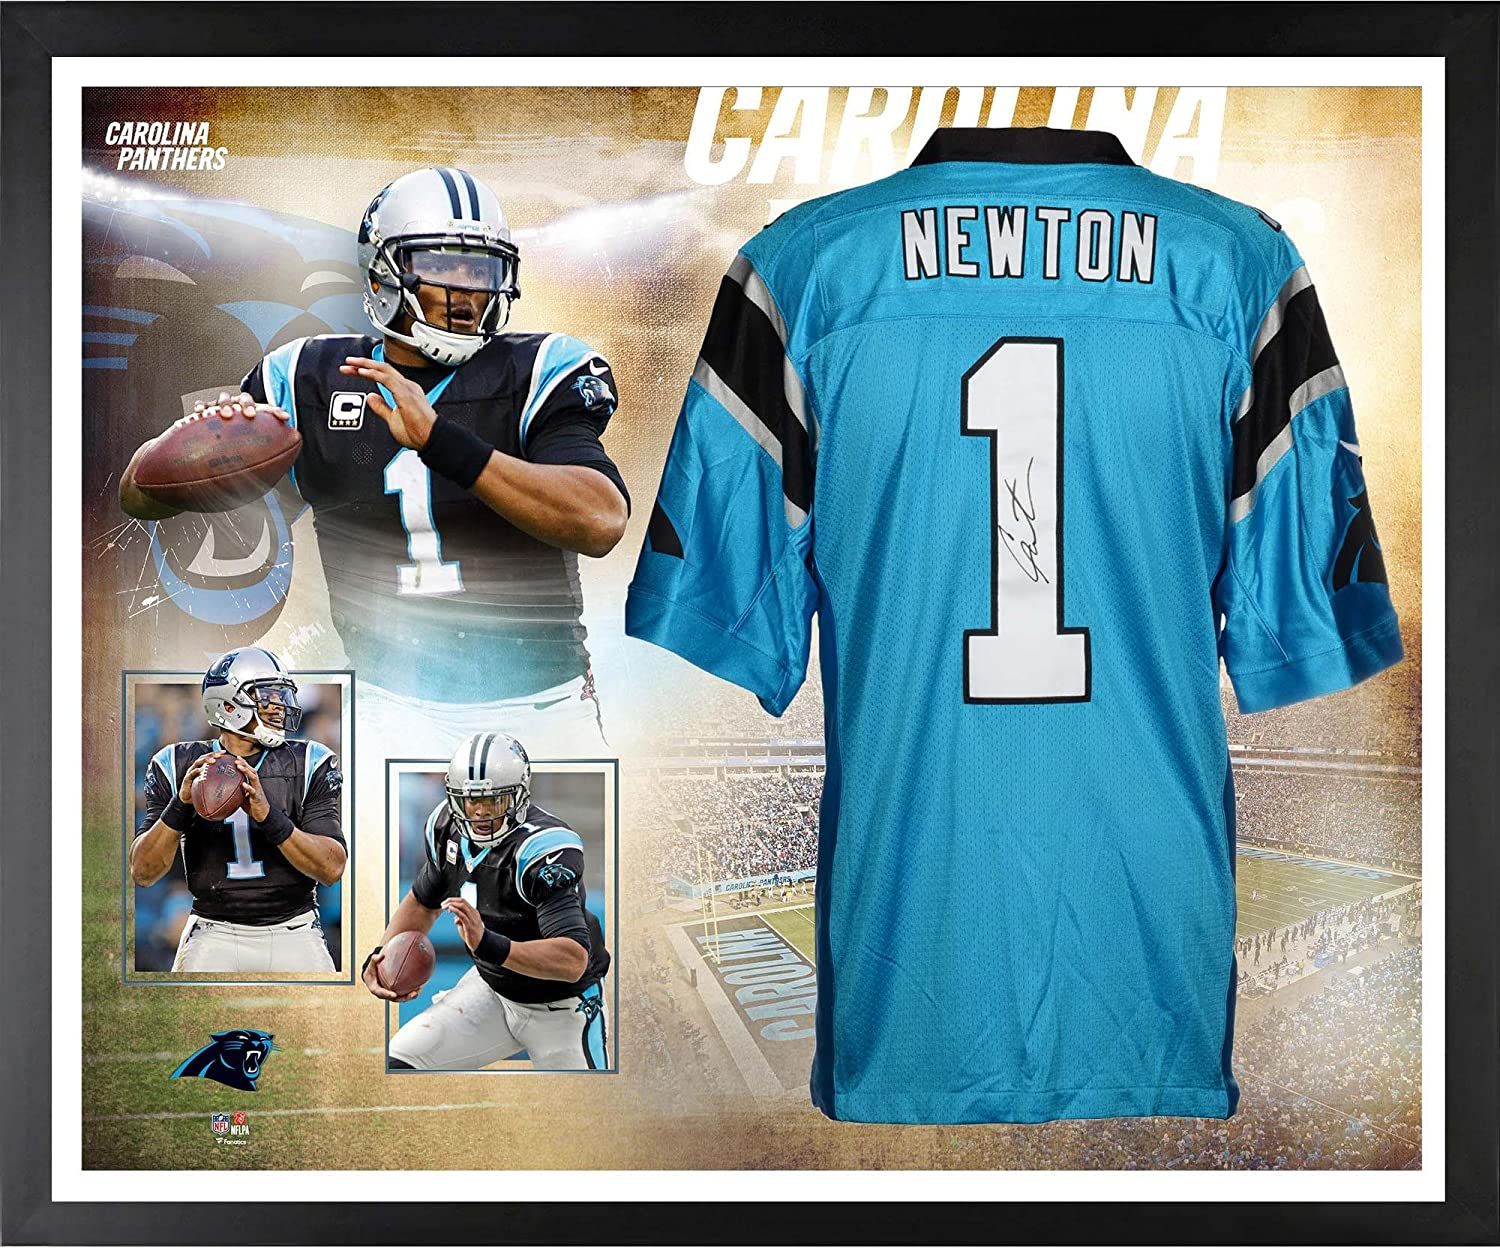 41b3e9a5e Cam Newton Carolina Panthers Framed Autographed Blue Nike Limited Jersey  Collage - Fanatics Authentic Certified at Amazon's Sports Collectibles Store